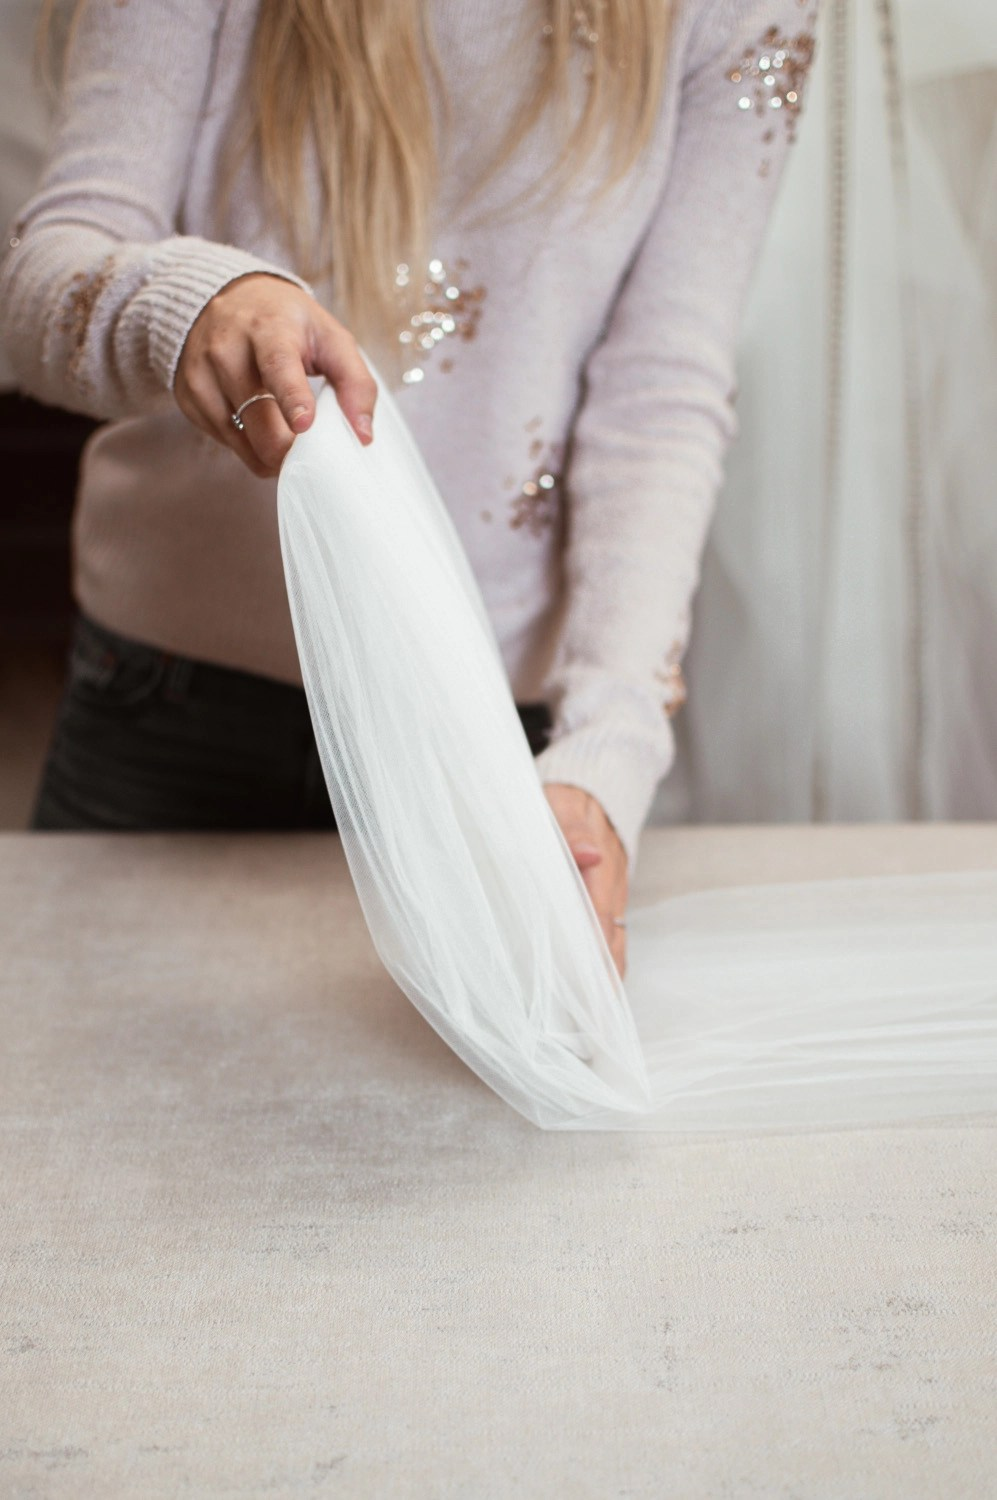 how to refold and package your veil